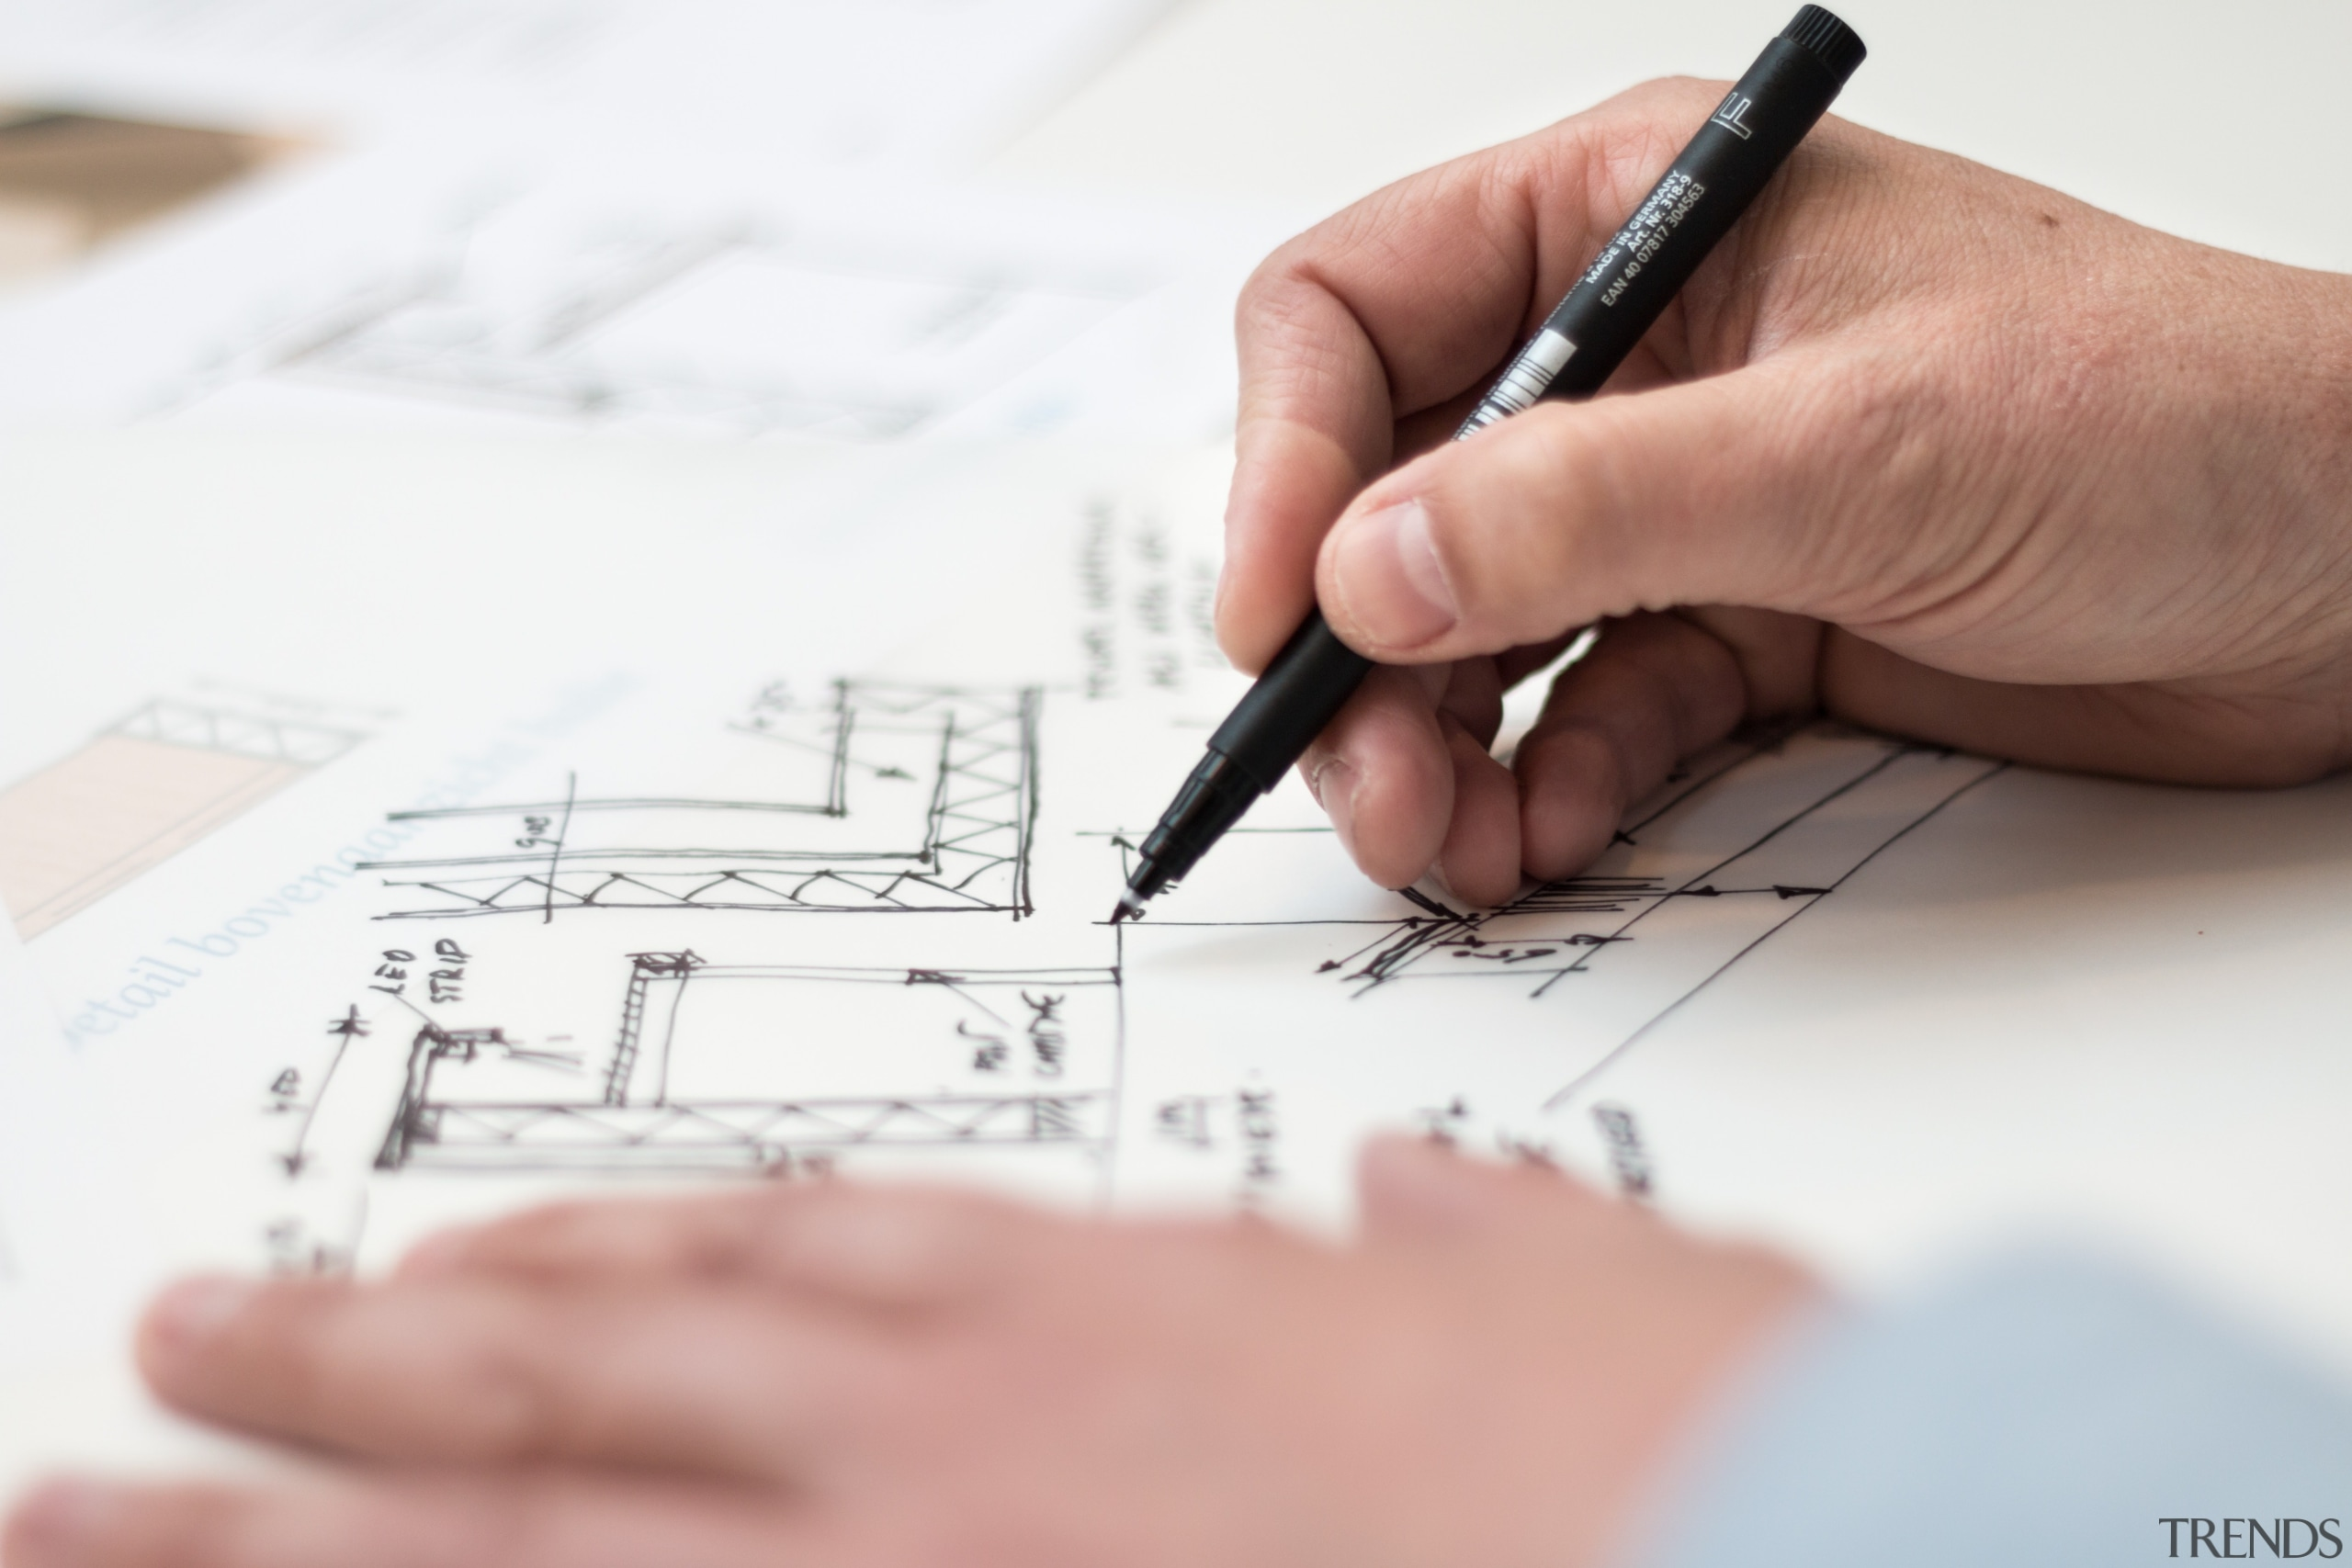 Make a loose plan and do some rough architecture, design, diagram, drawing, engineering, font, hand, line, sketch, technical drawing, text, writing, white